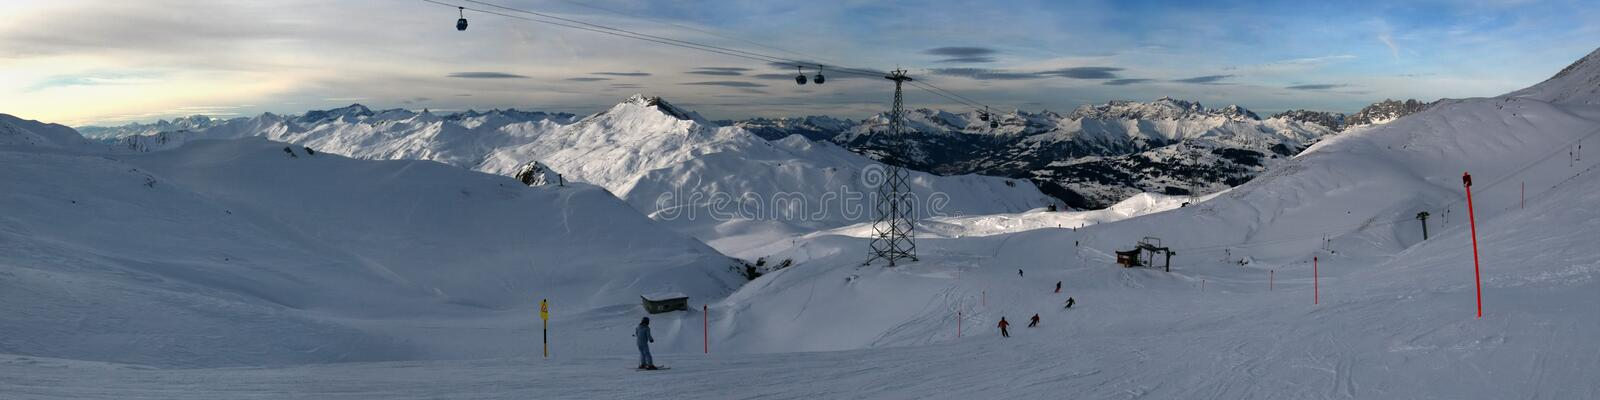 Alpine skiing with a splash of sun royalty free stock images